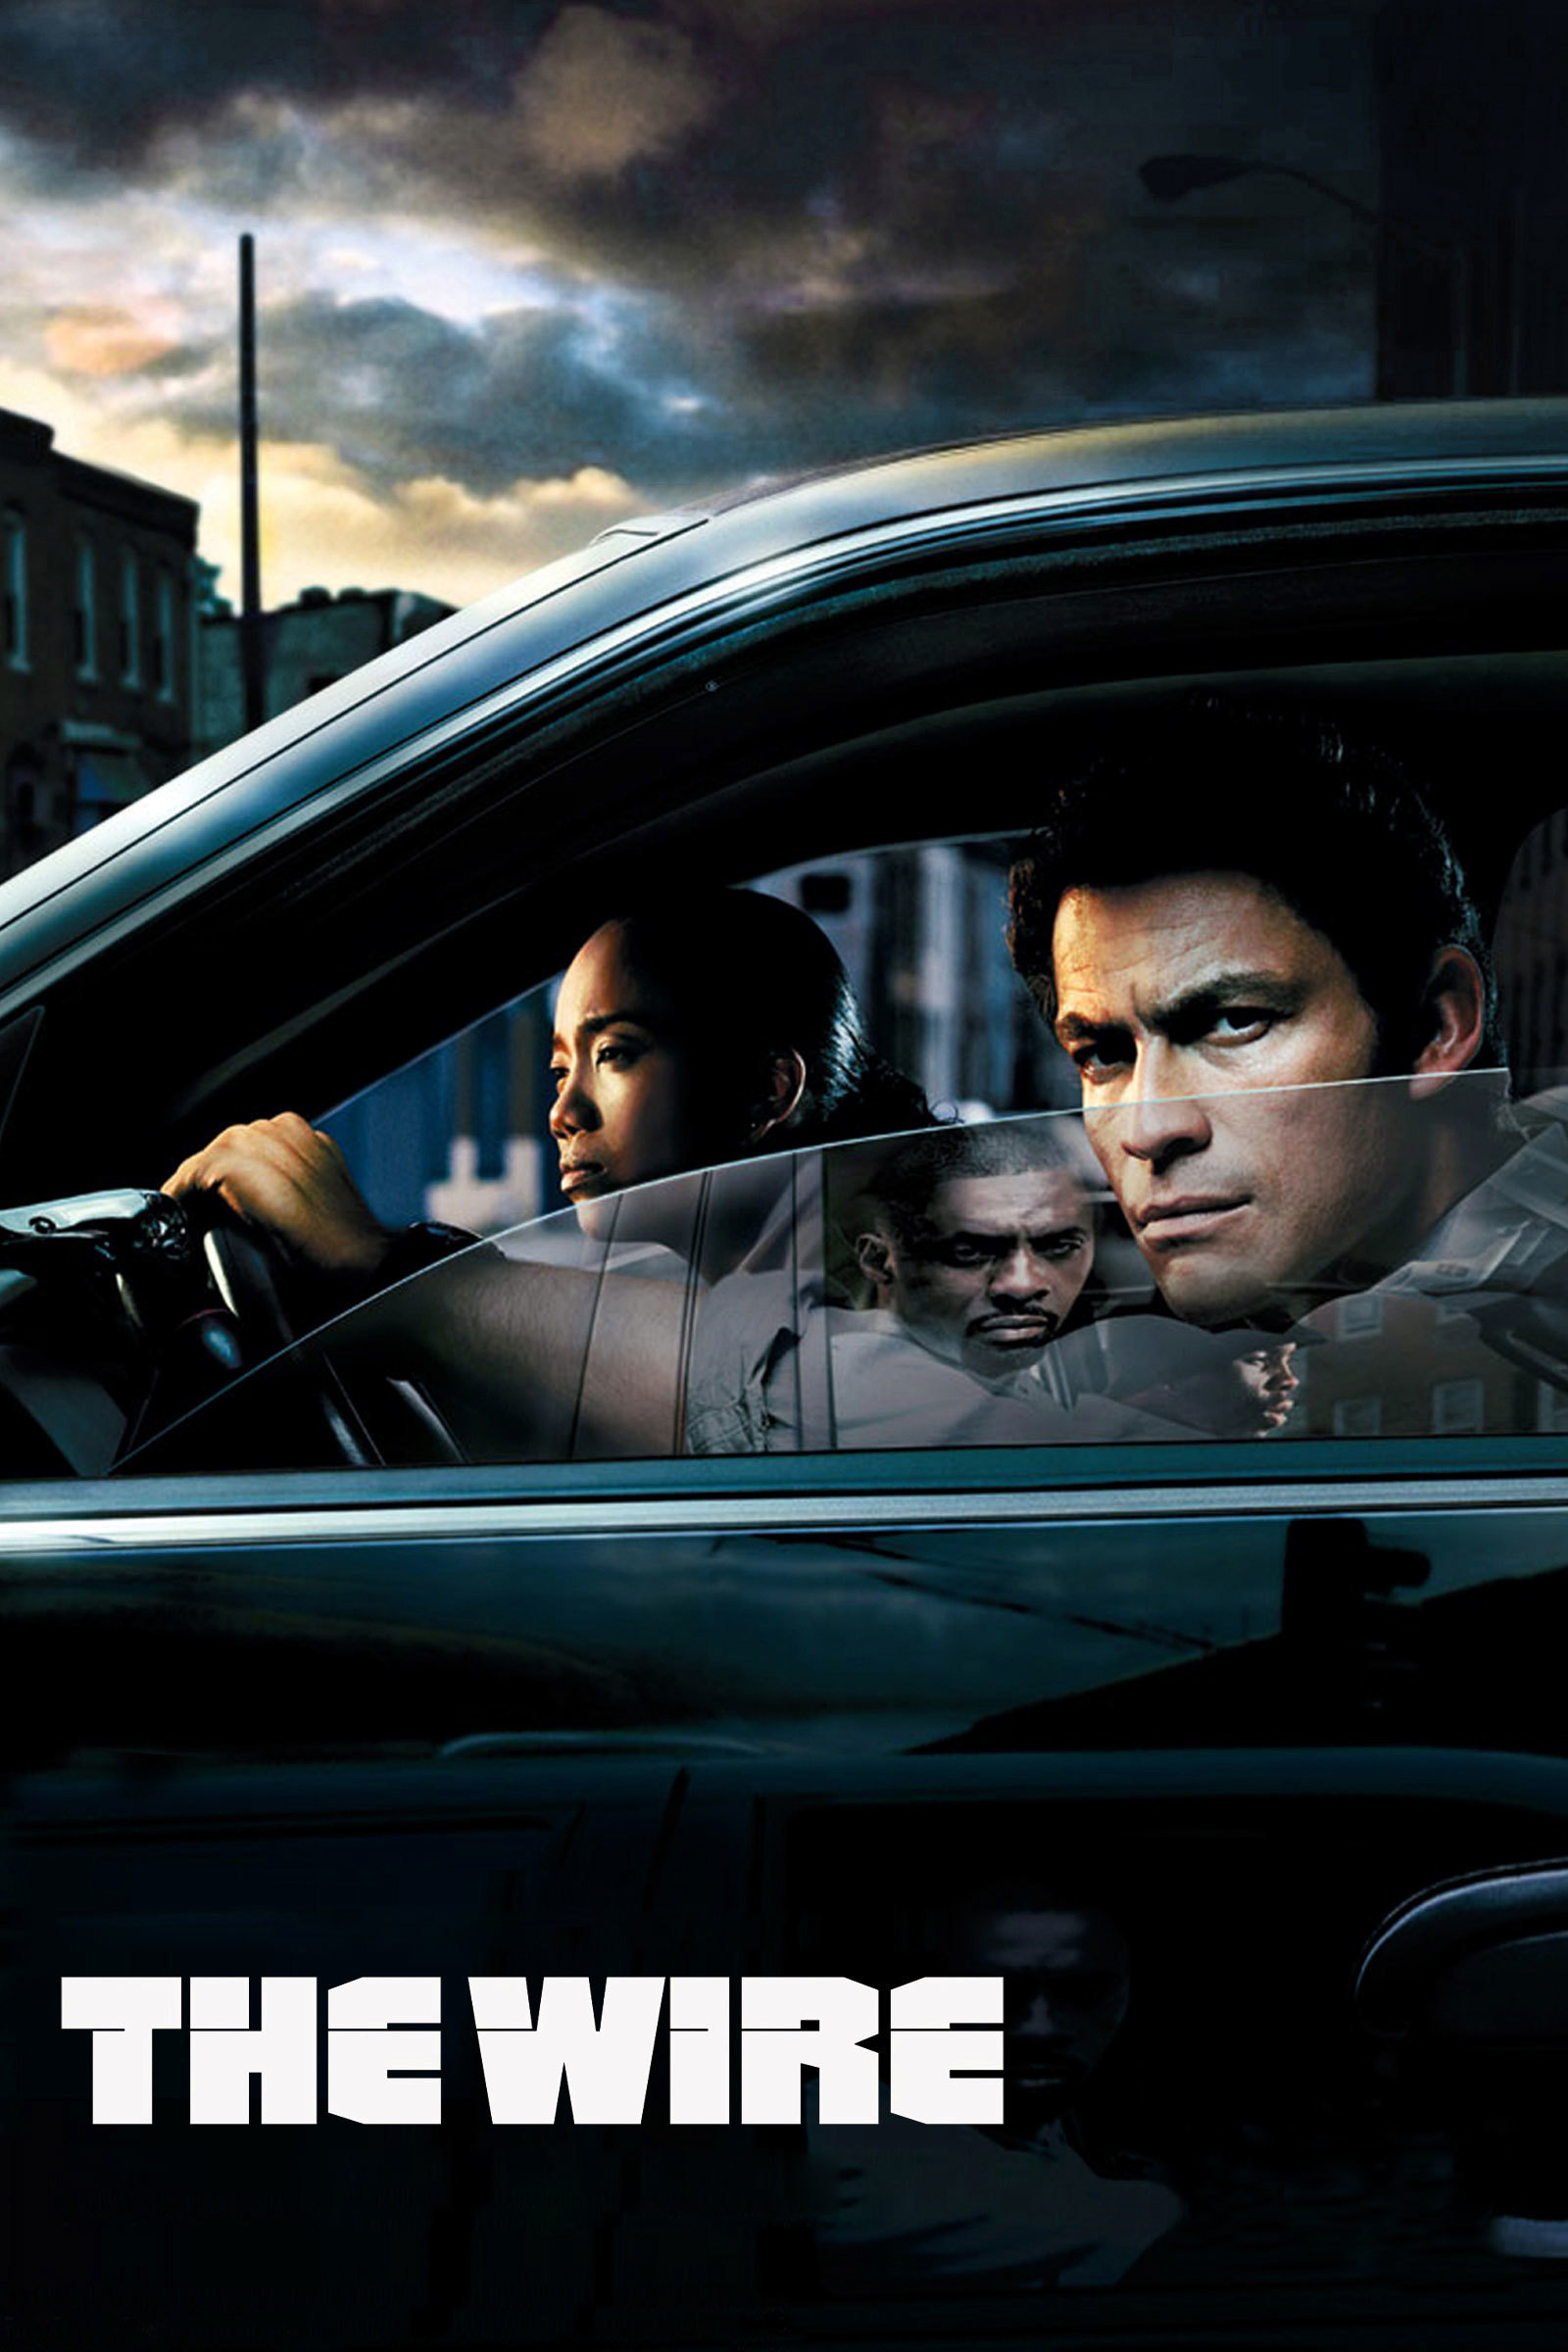 @HBO The Wire